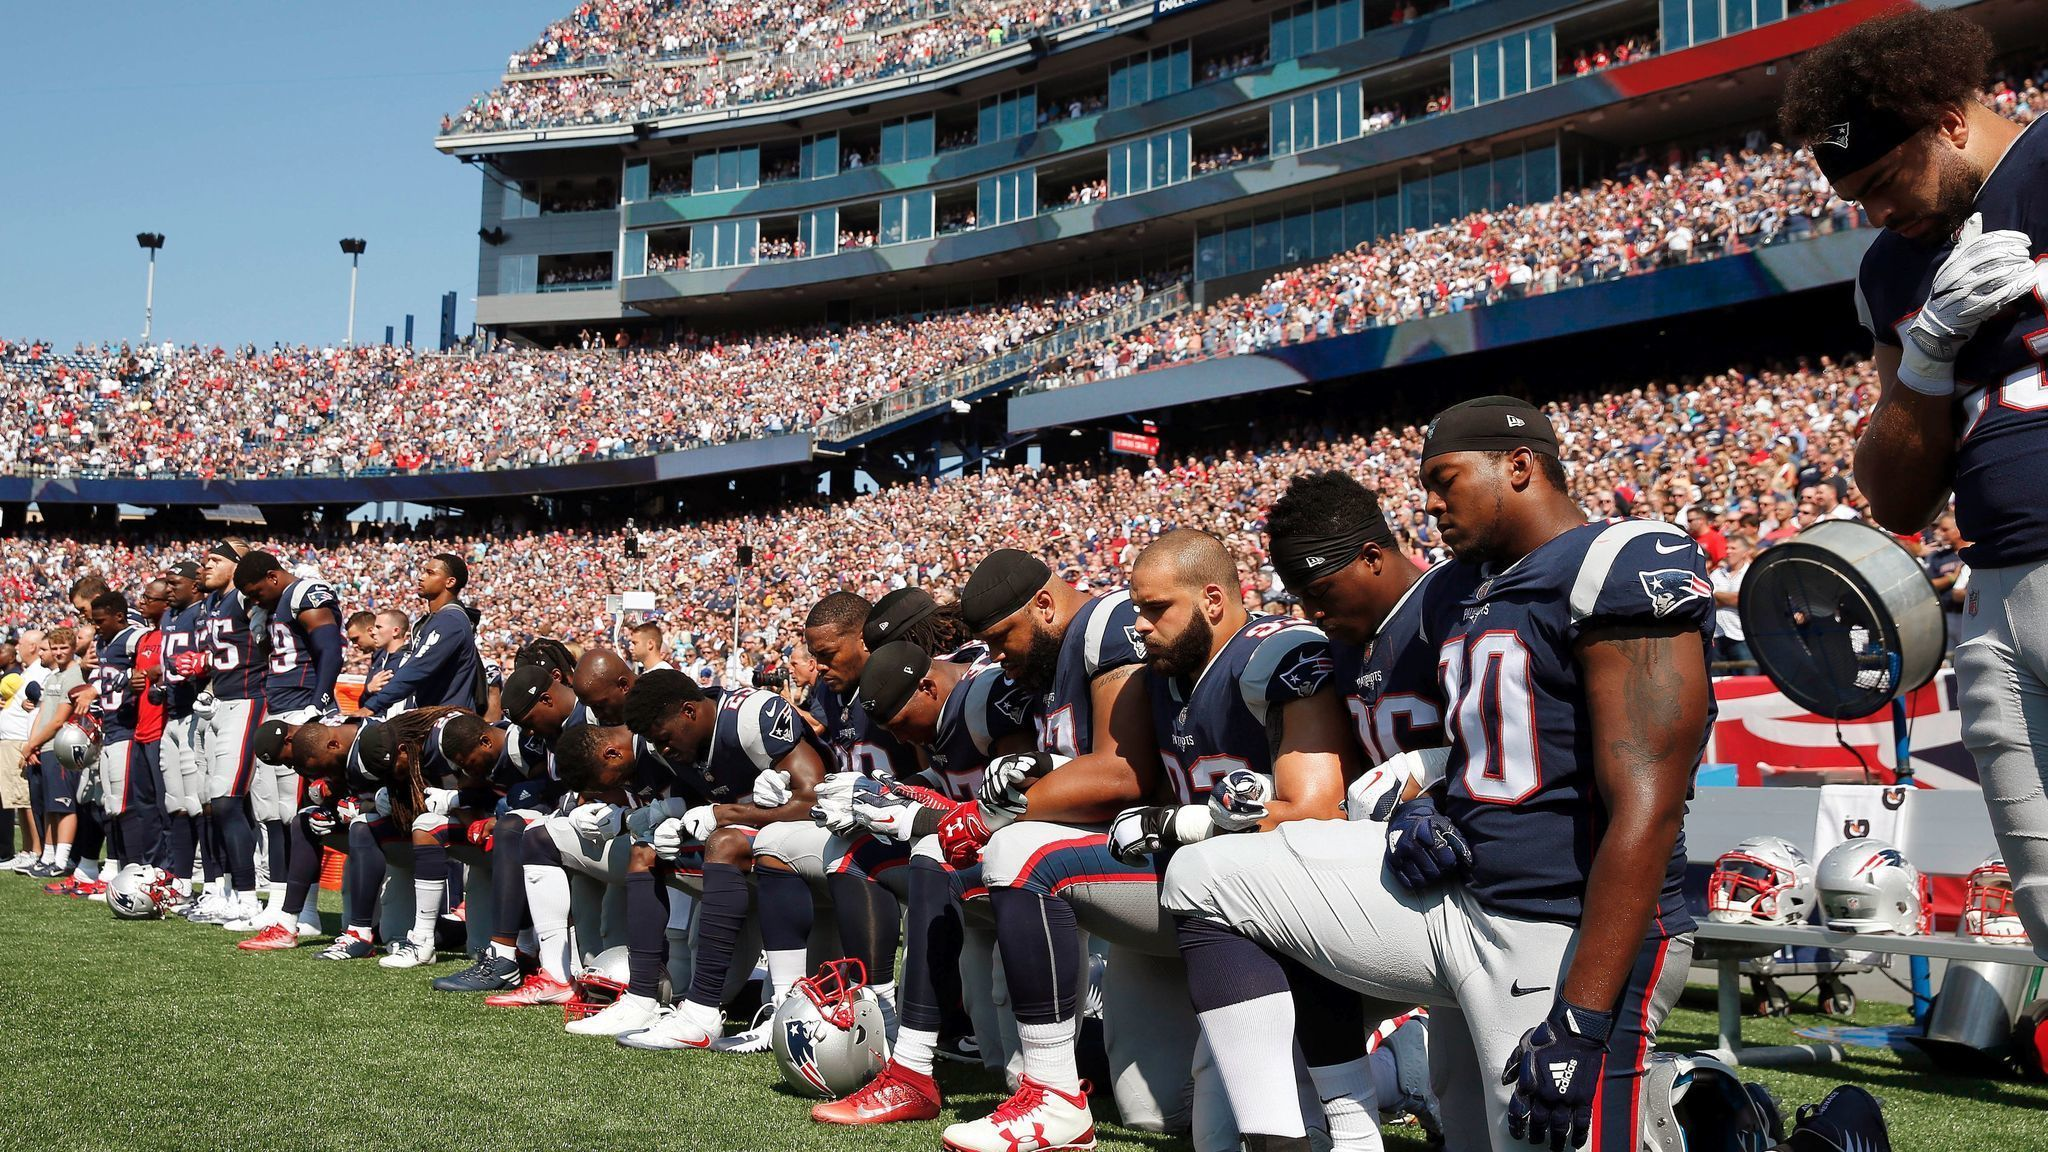 http://www.latimes.com/sports/sportsnow/la-sp-directv-refund-nfl-protests-20170927-story.html